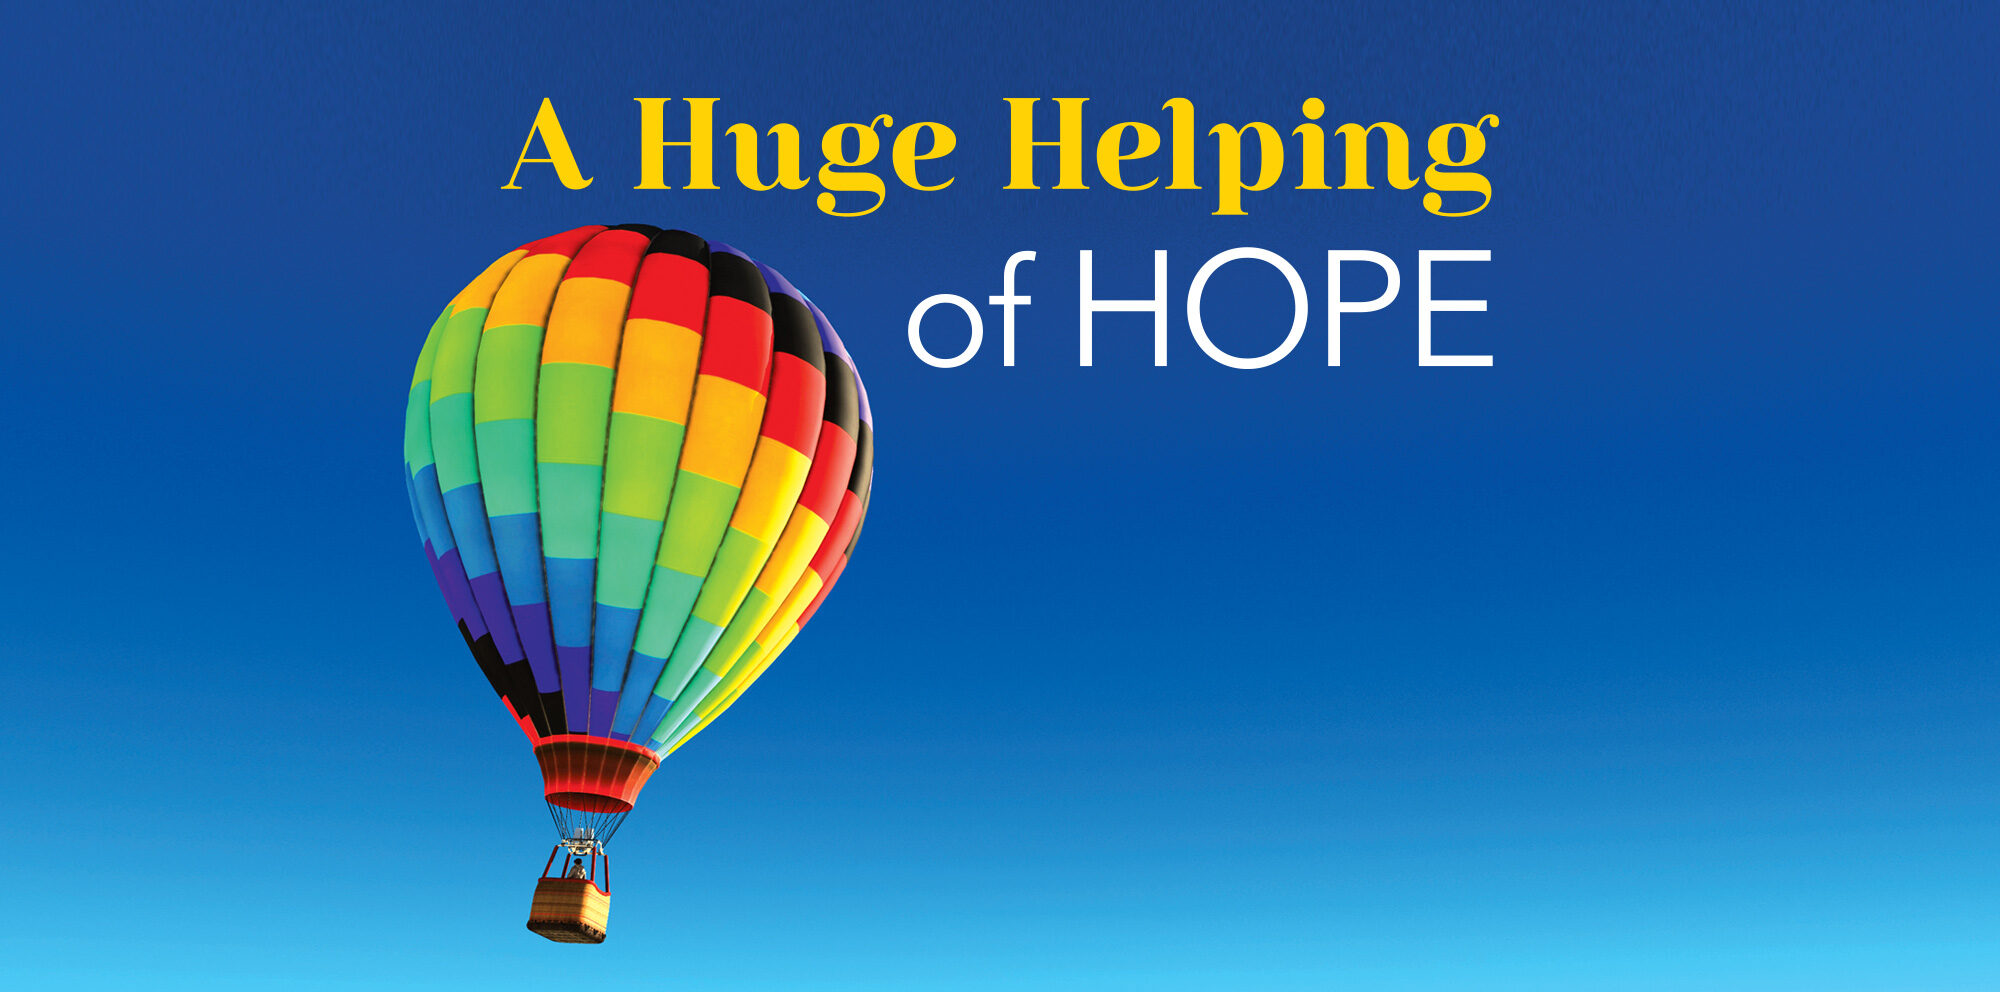 Huge Helping of Hope